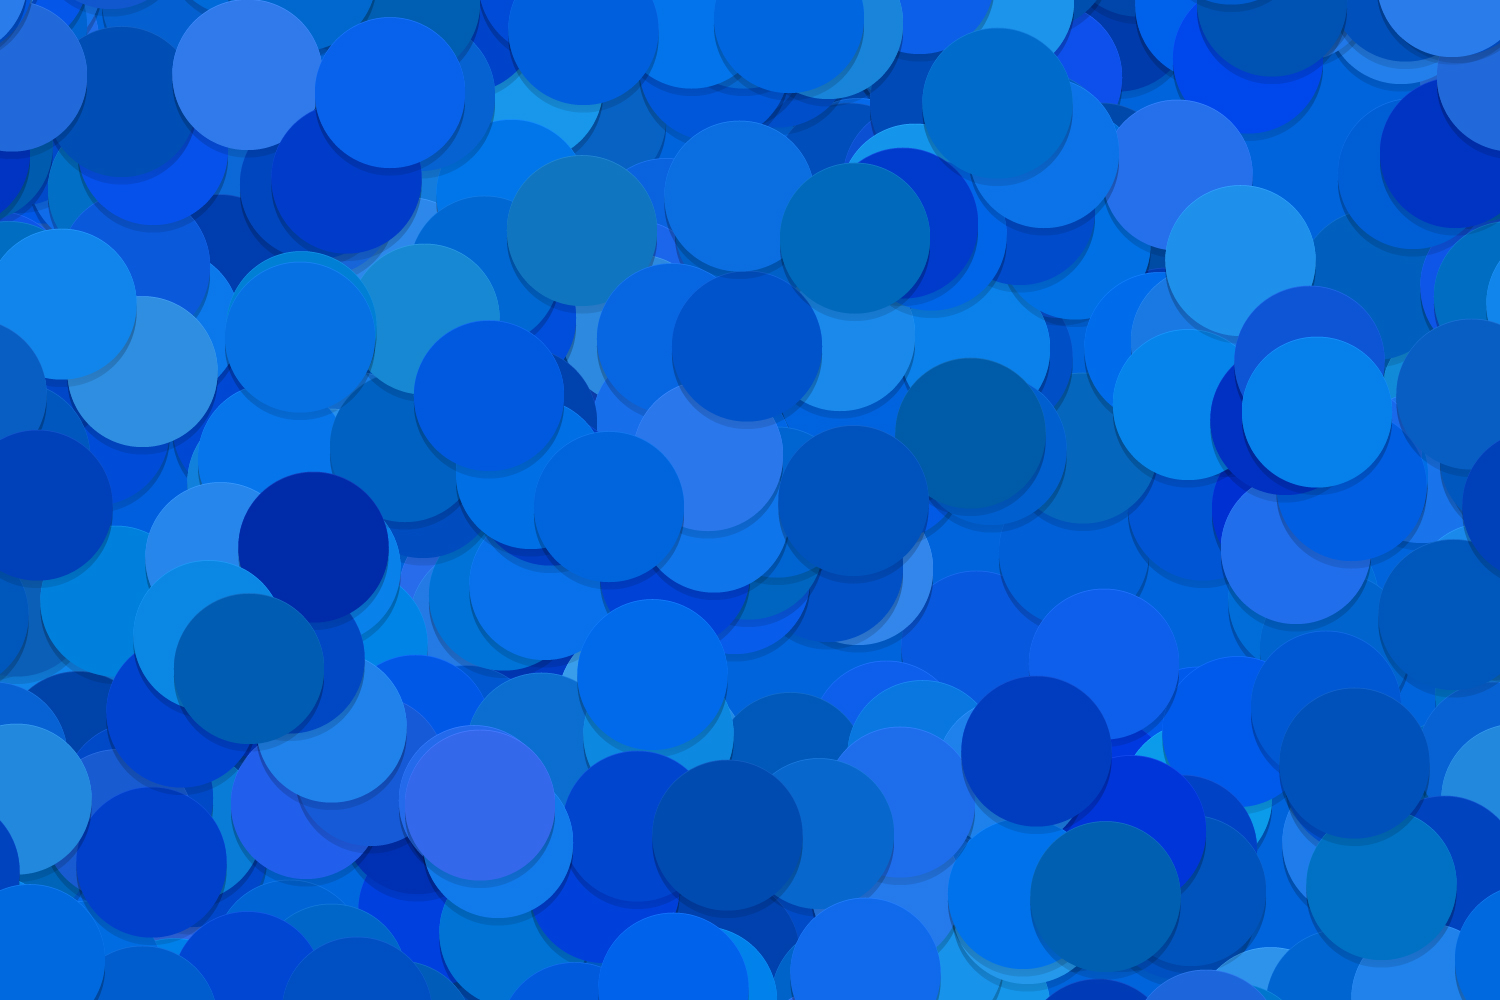 40 Seamless Circle Backgrounds (AI, EPS, JPG 5000x5000) example image 7